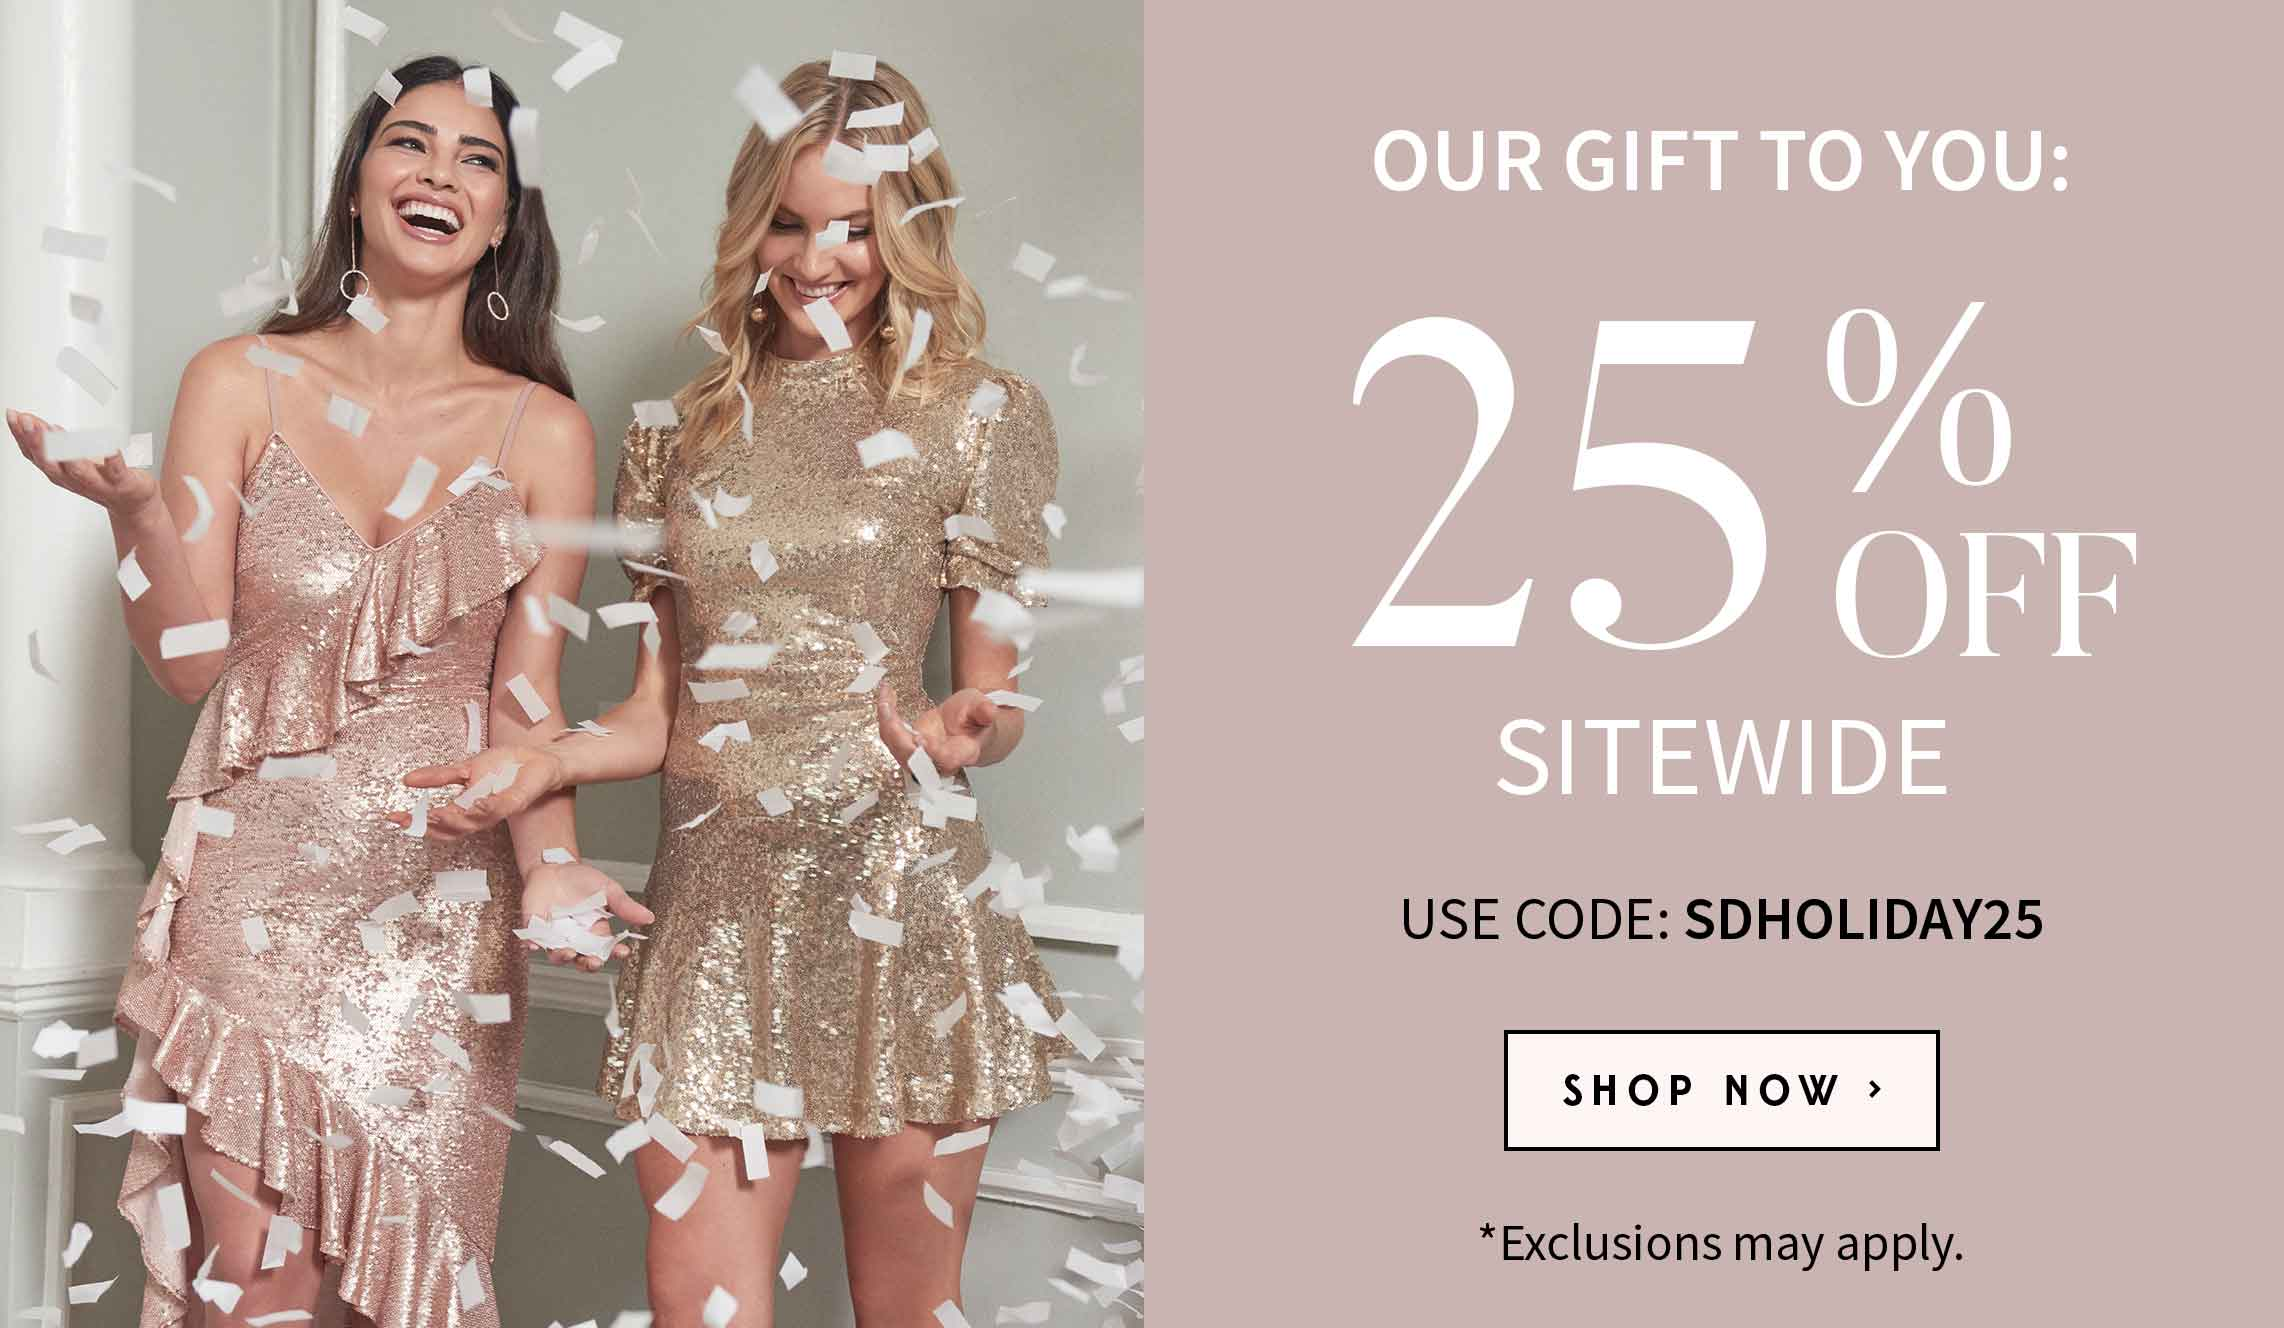 Our gift to you 25 percent off